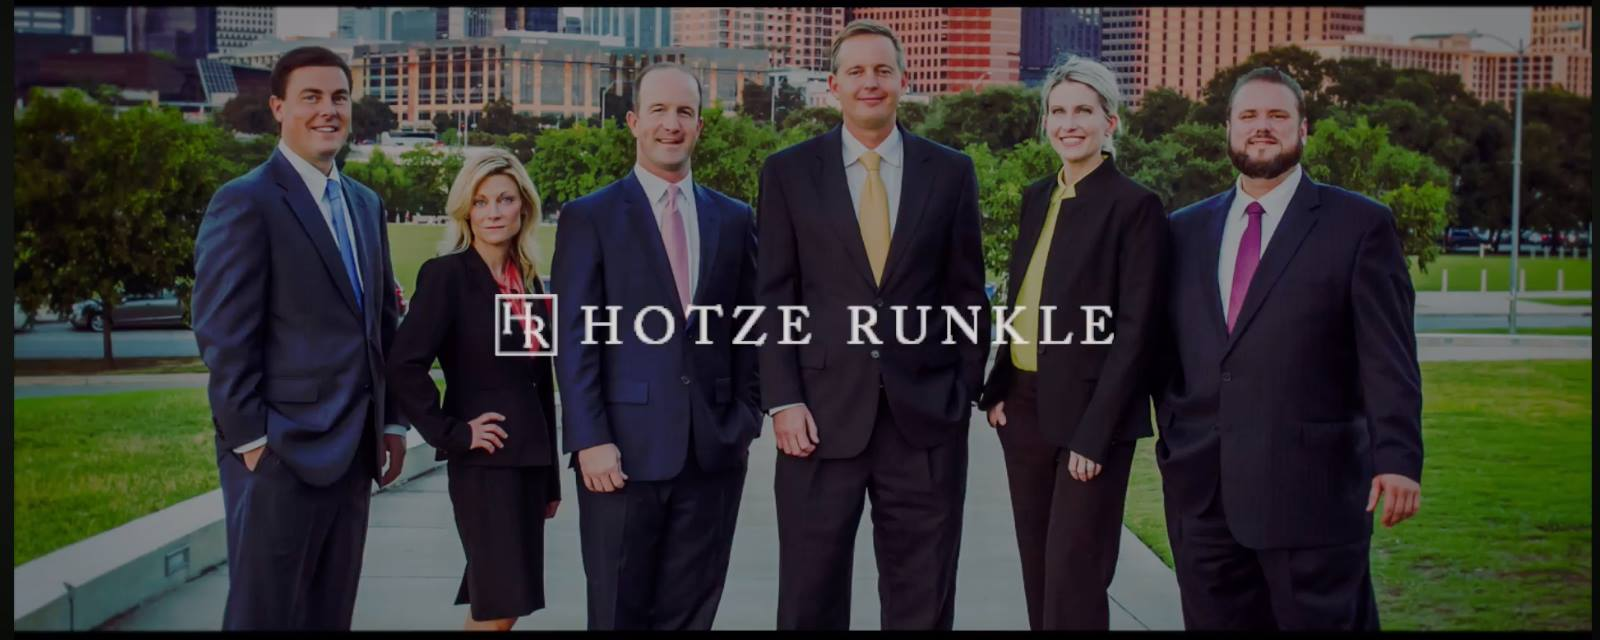 Hotze Runkle PLLC